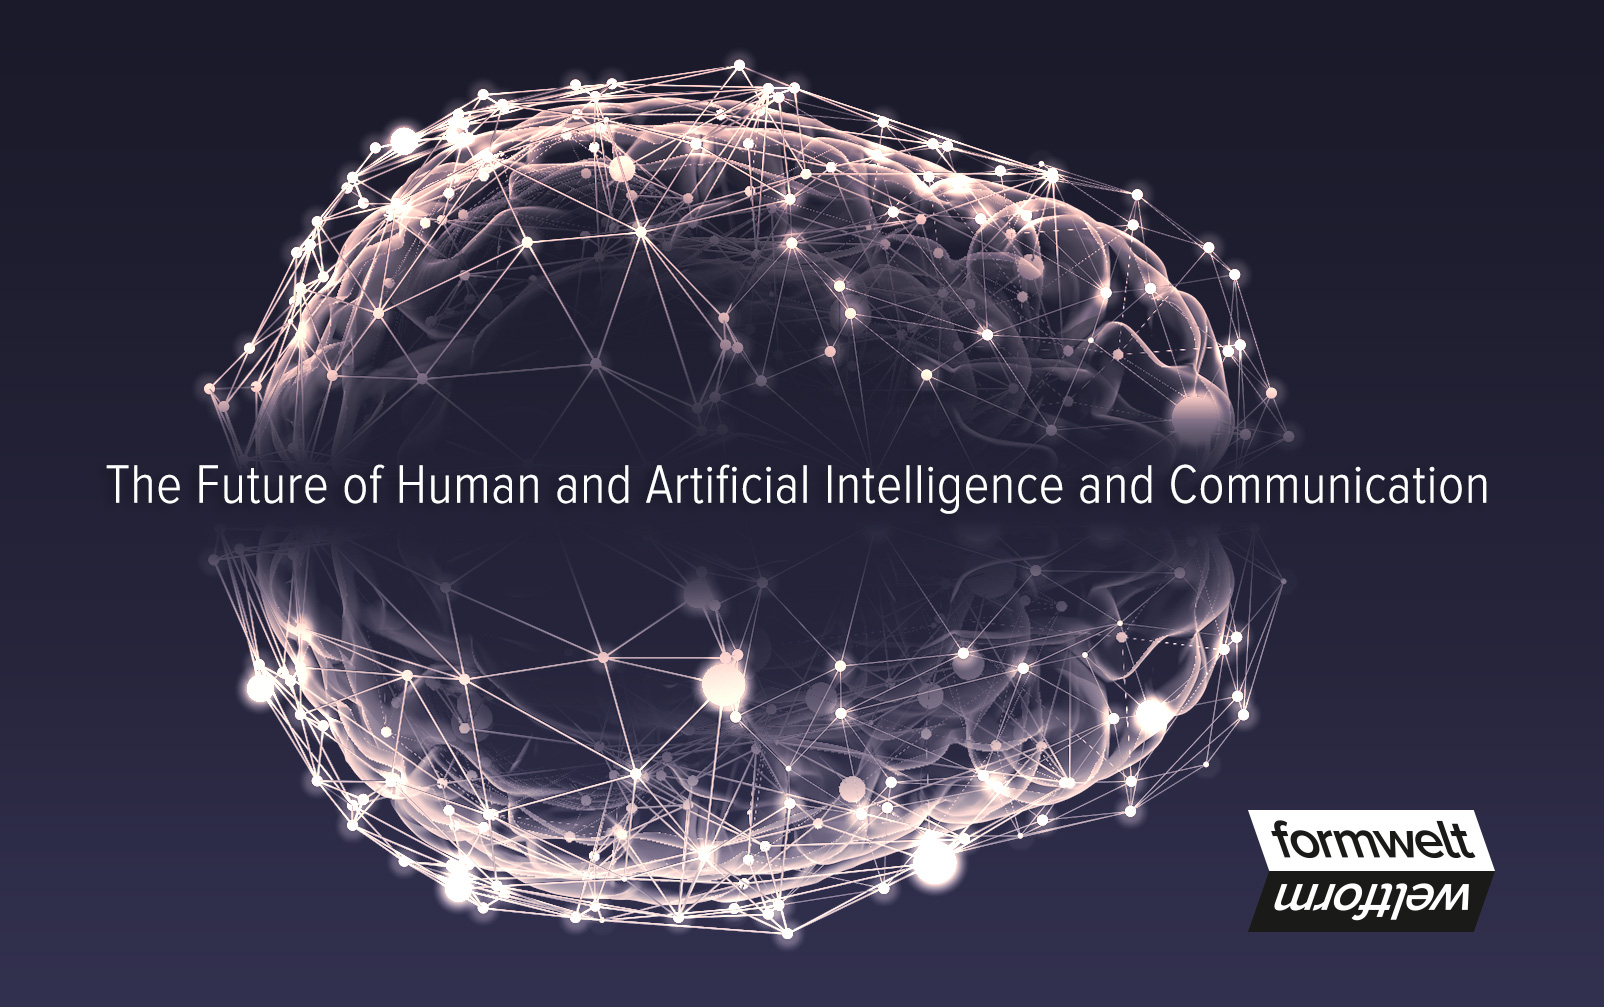 The Future of Human and Artificial Intelligence and Communication